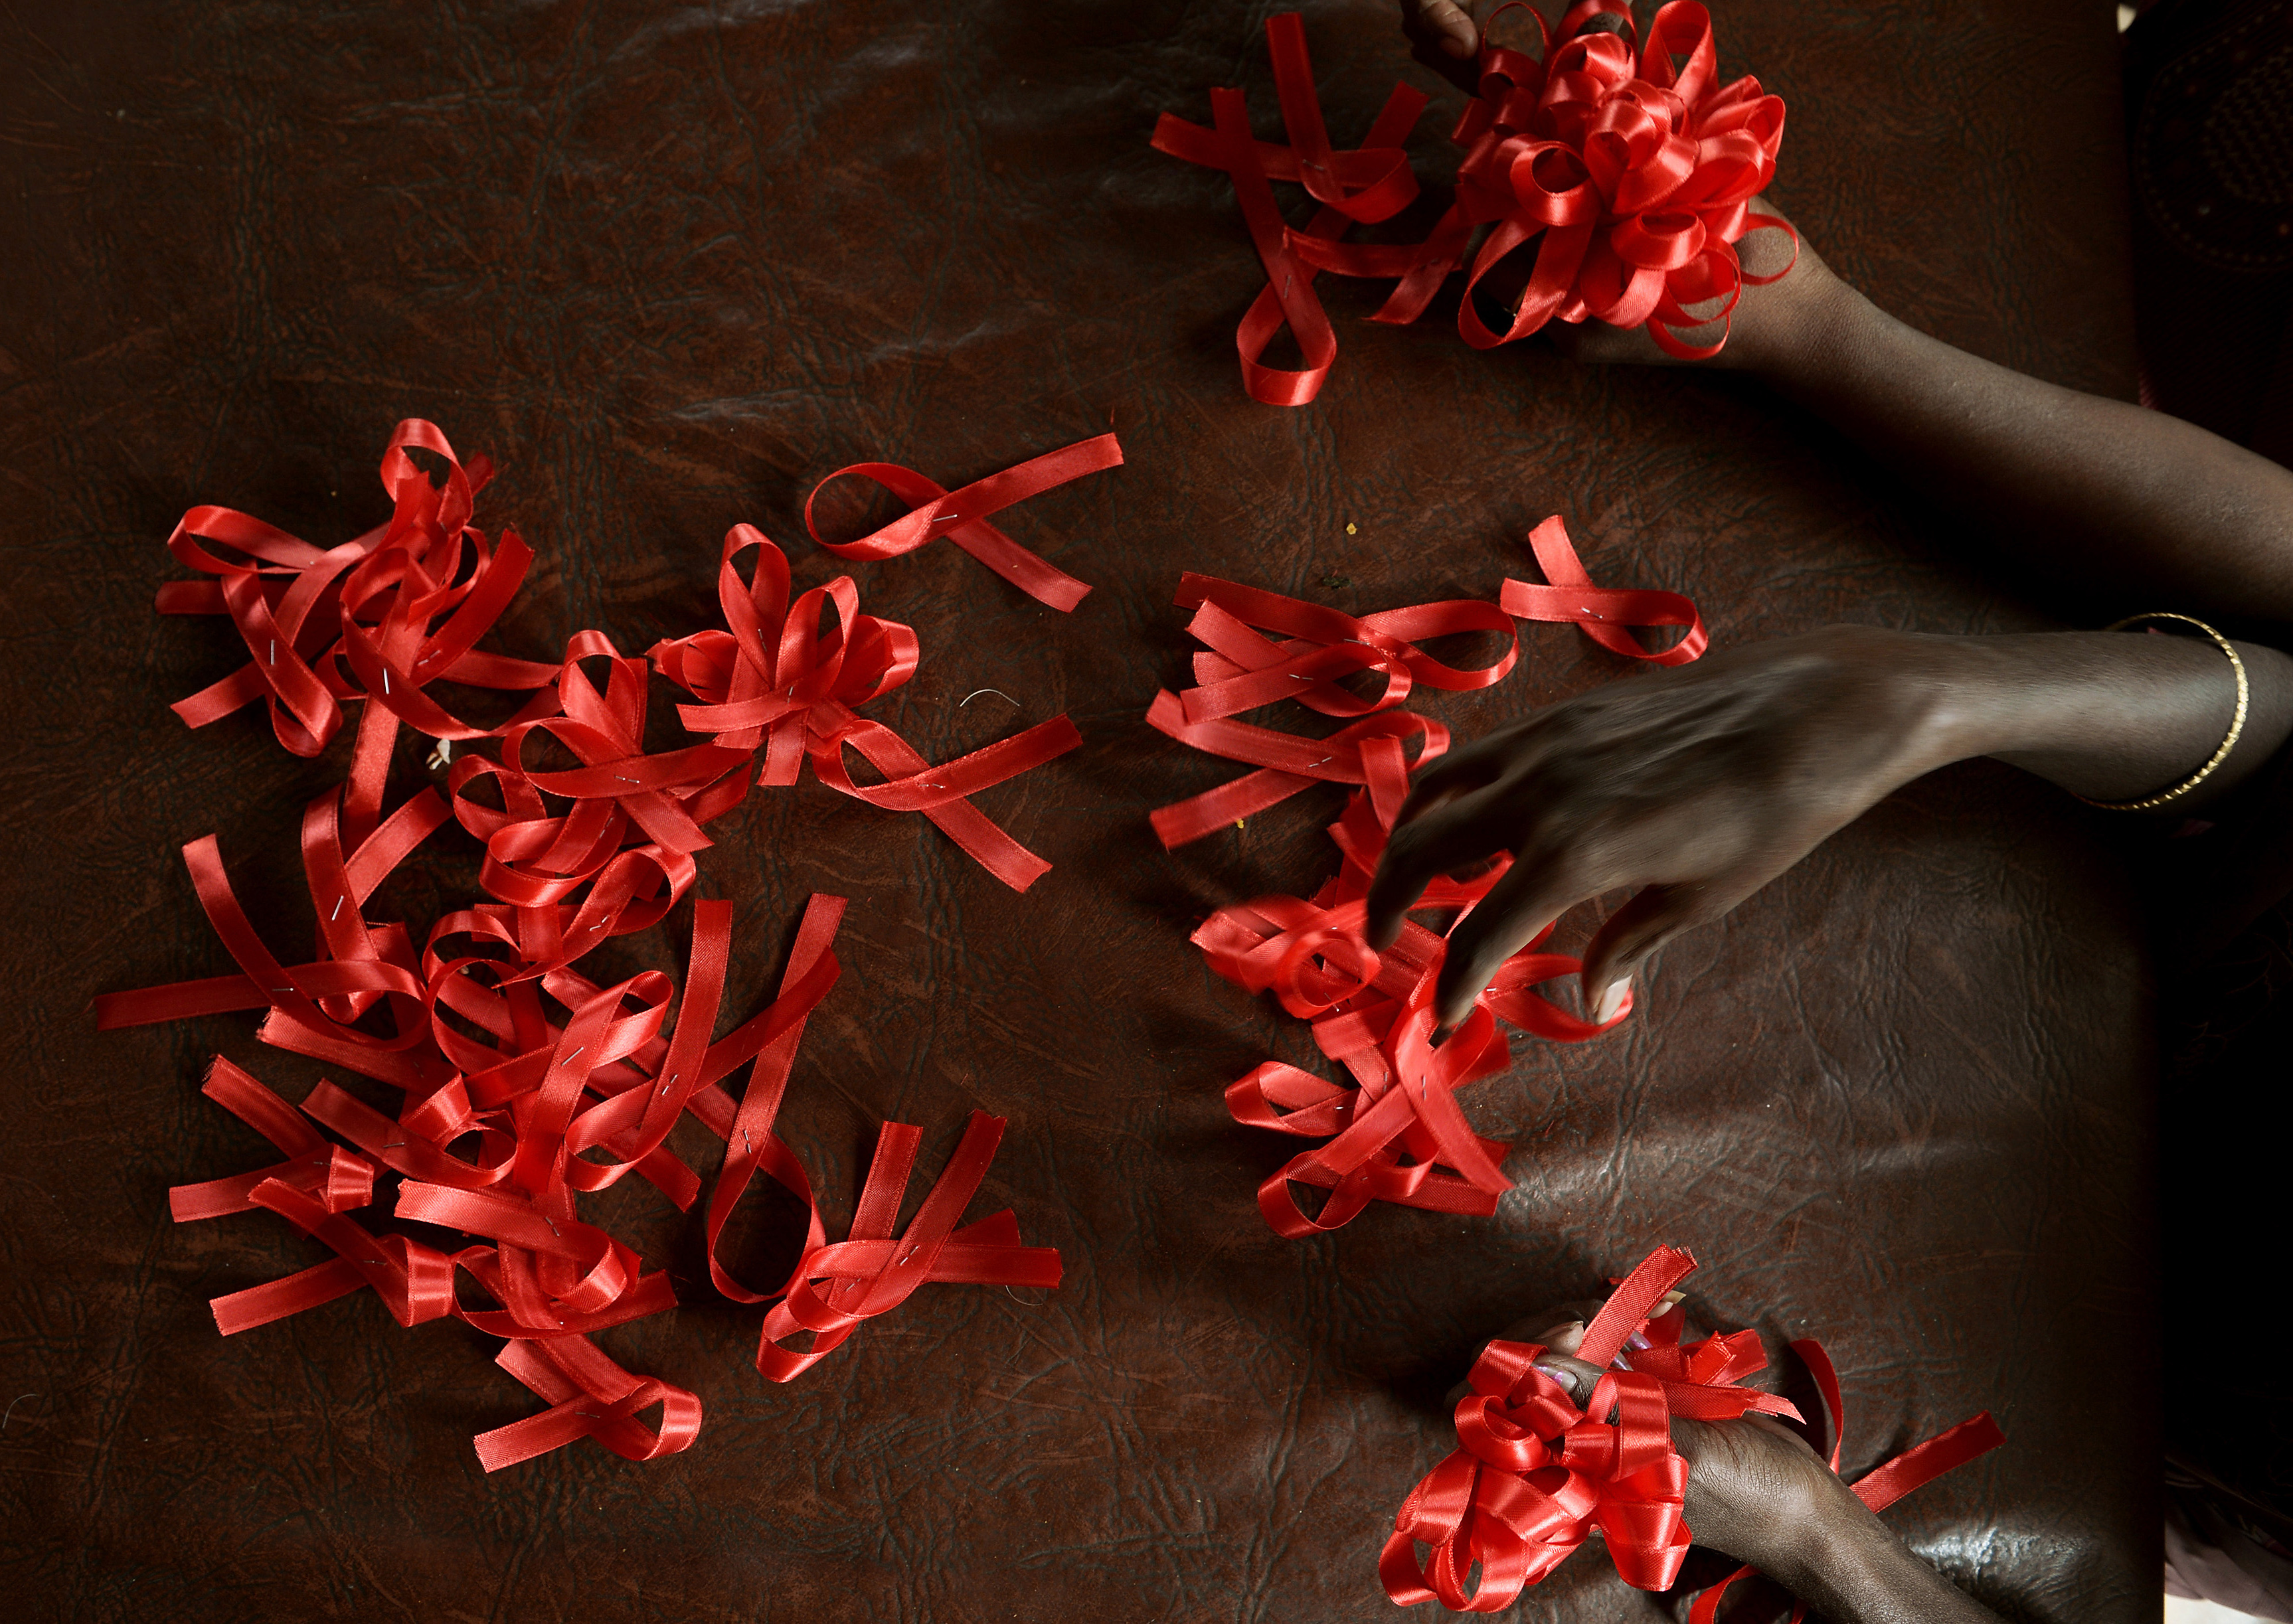 Y Combinator backs its second non-profit, Immunity Project, aimed at developing an HIV vaccine